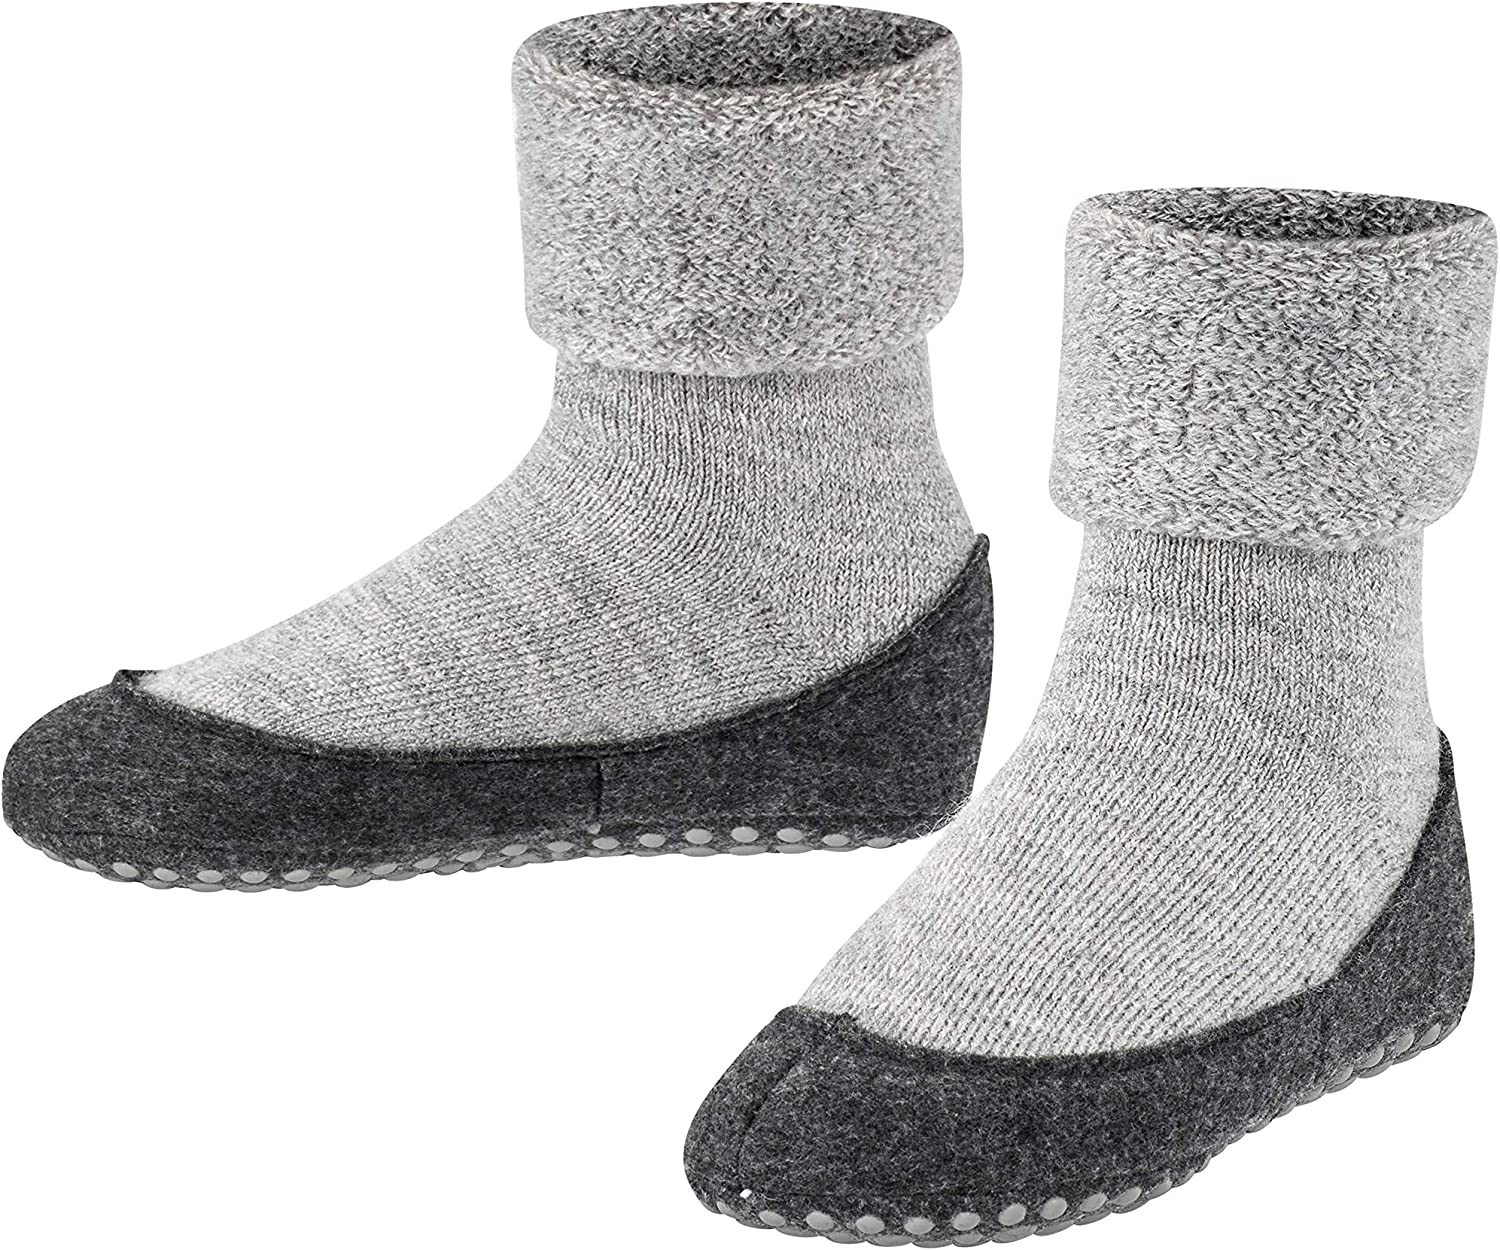 FALKE Unisex-Child Cosyshoe Slipper Sock - 90% Merino Wool, In Blue, Grey or Red, Sizes 2 to 12 years, 1 Pair